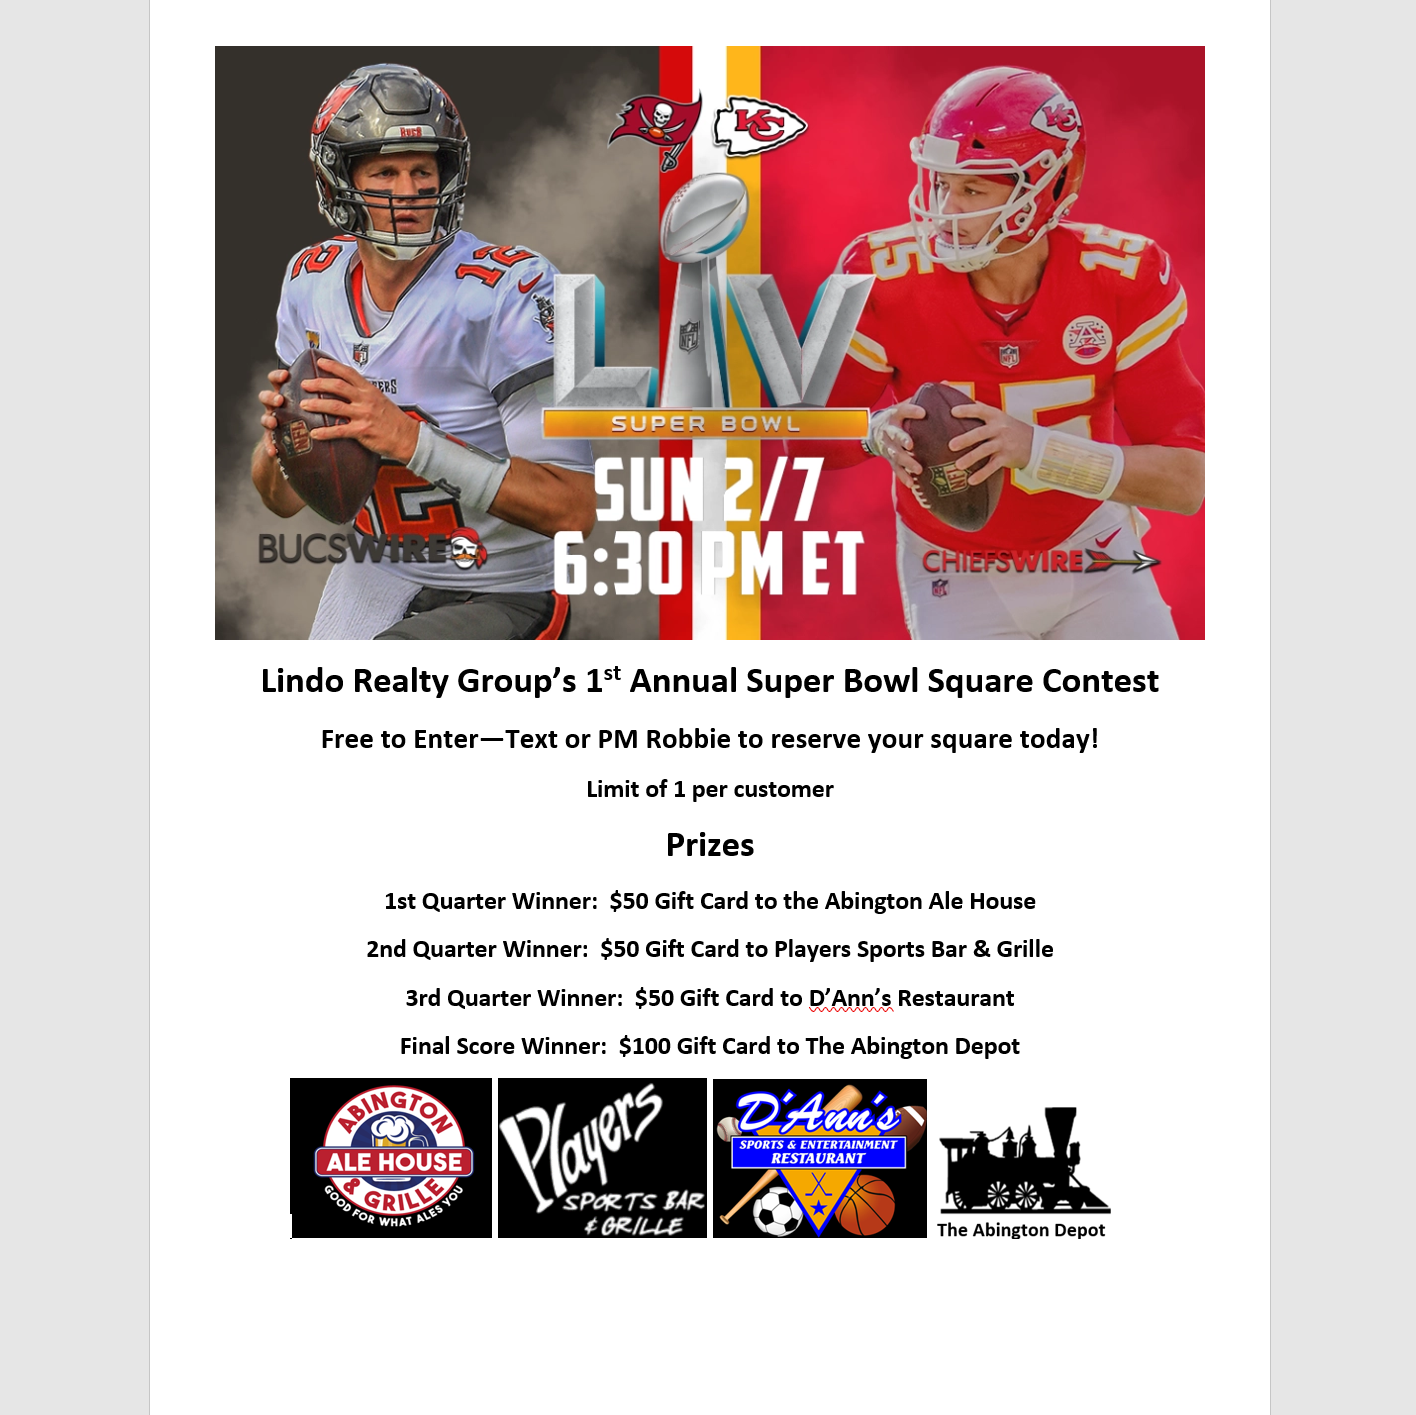 Lindo-Realty-Group-Super-Bowl-Square-Contest